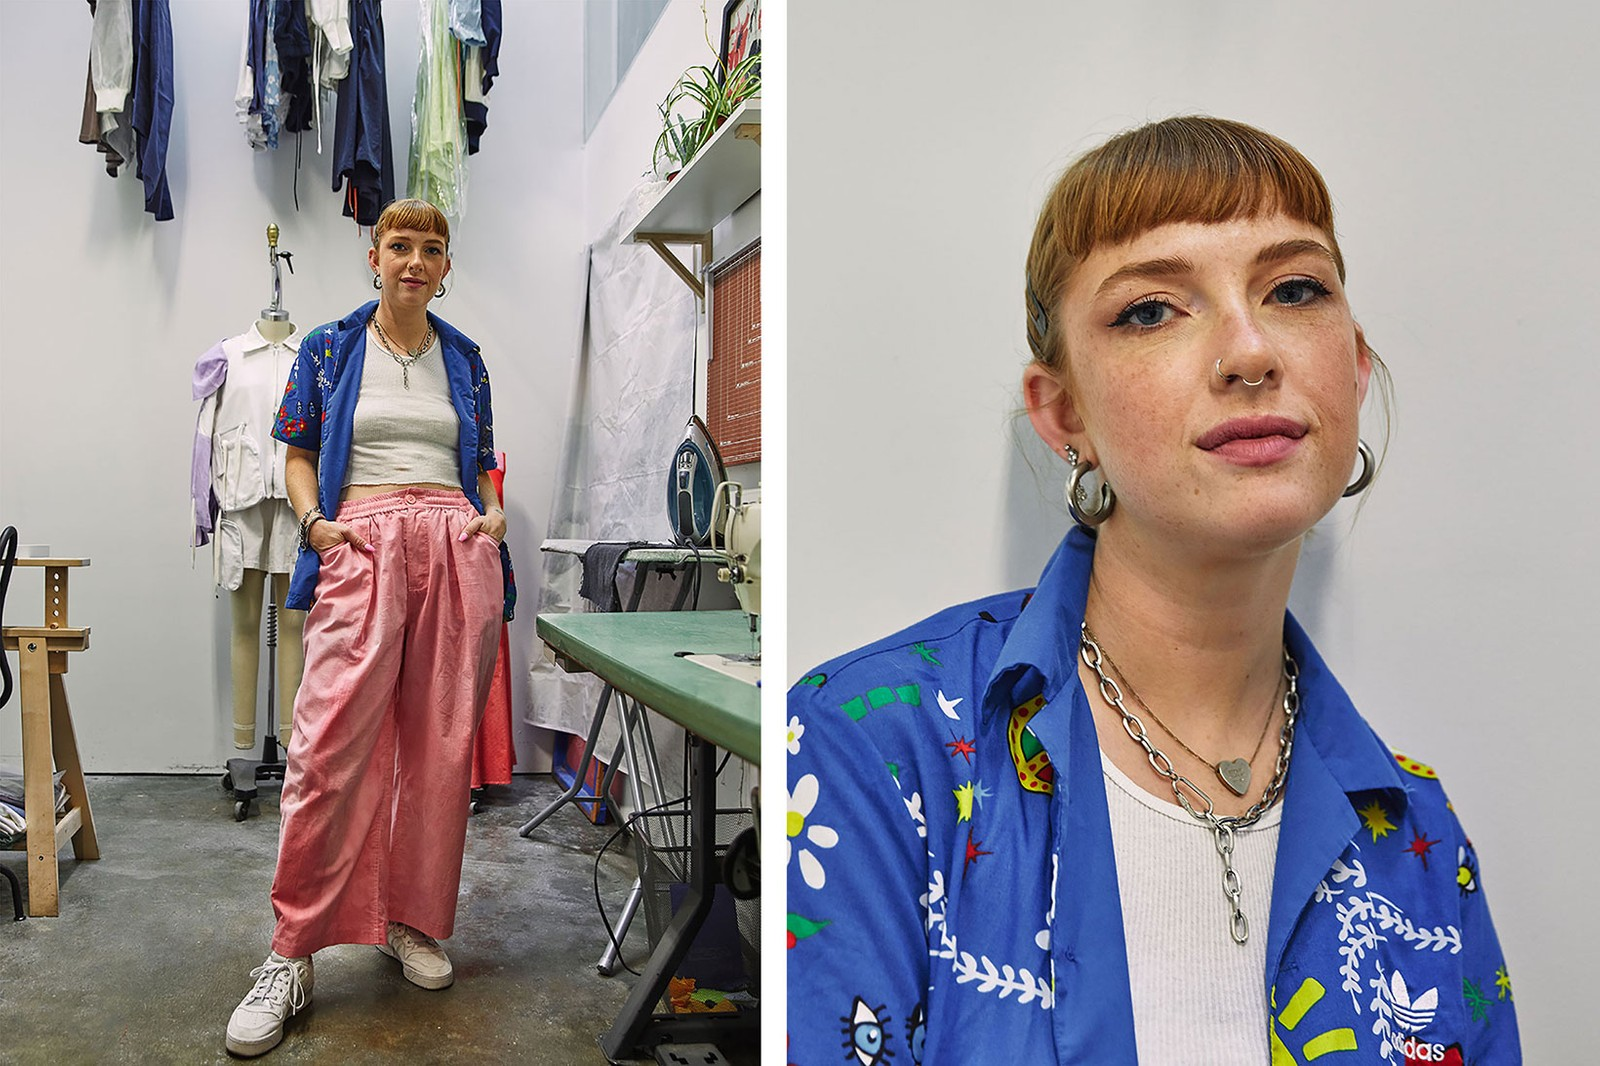 isabel hall streetwear designer interview spring summer 2020 collection